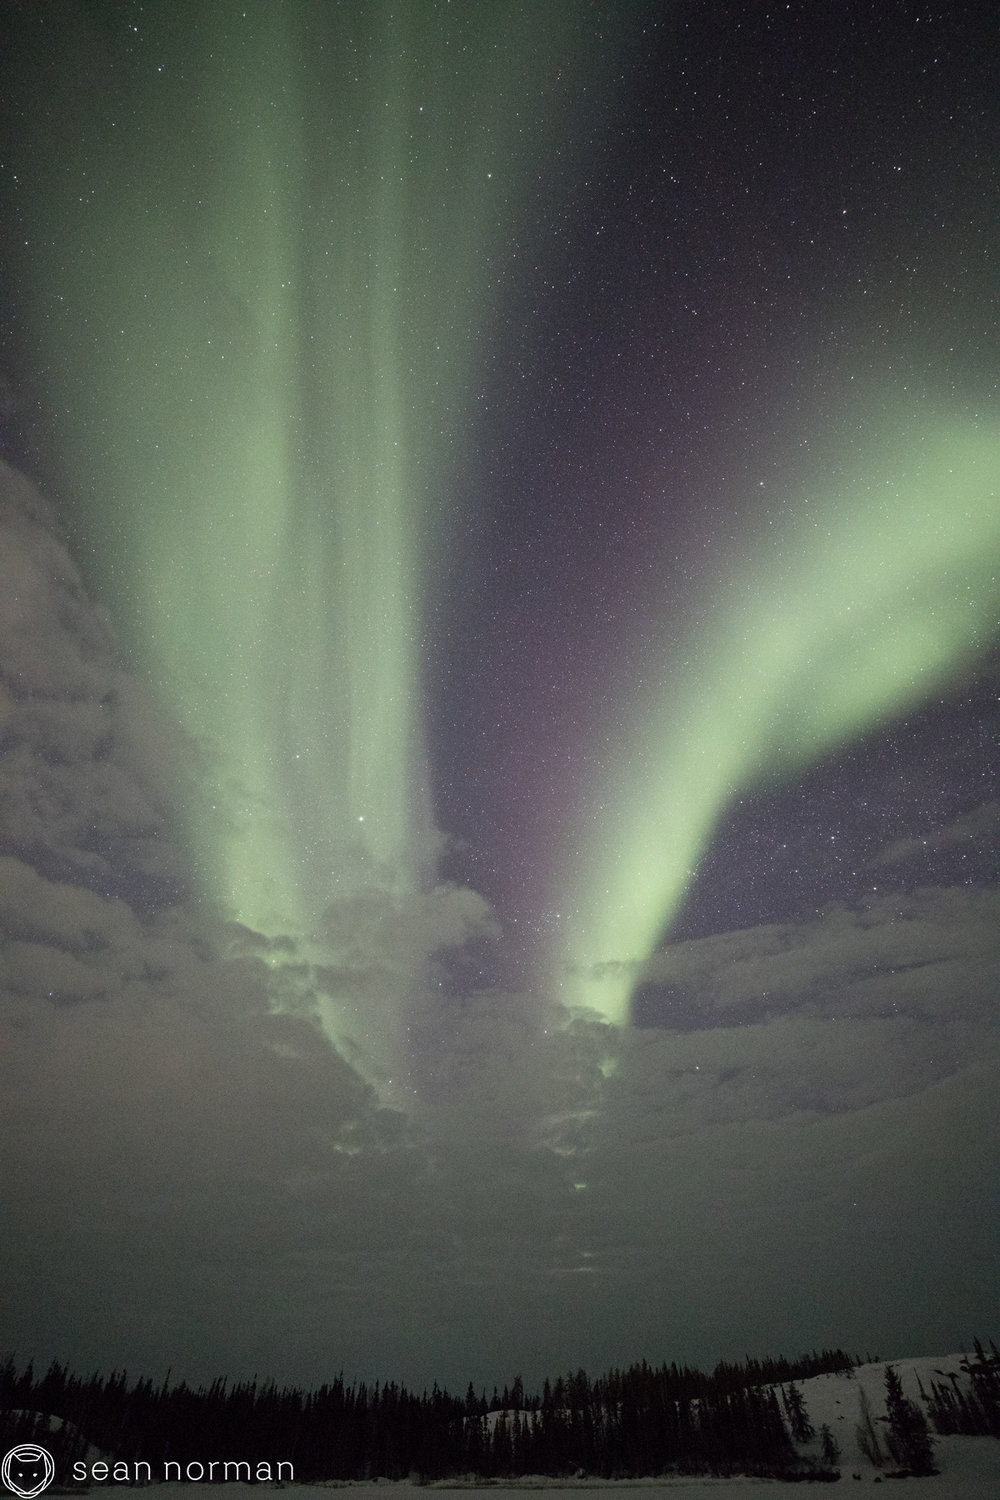 Yellowknife Canada Aurora Borealis View - Photo Blog - 4.jpg